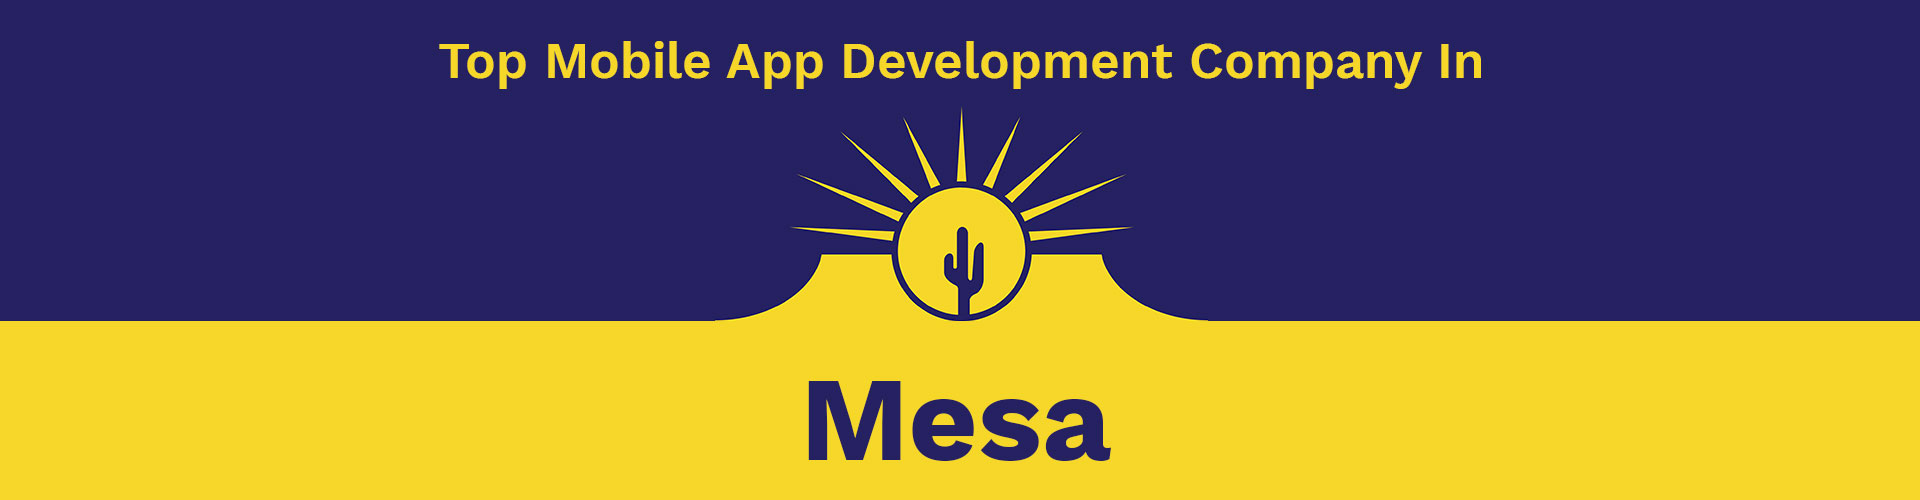 mobile app development company mesa